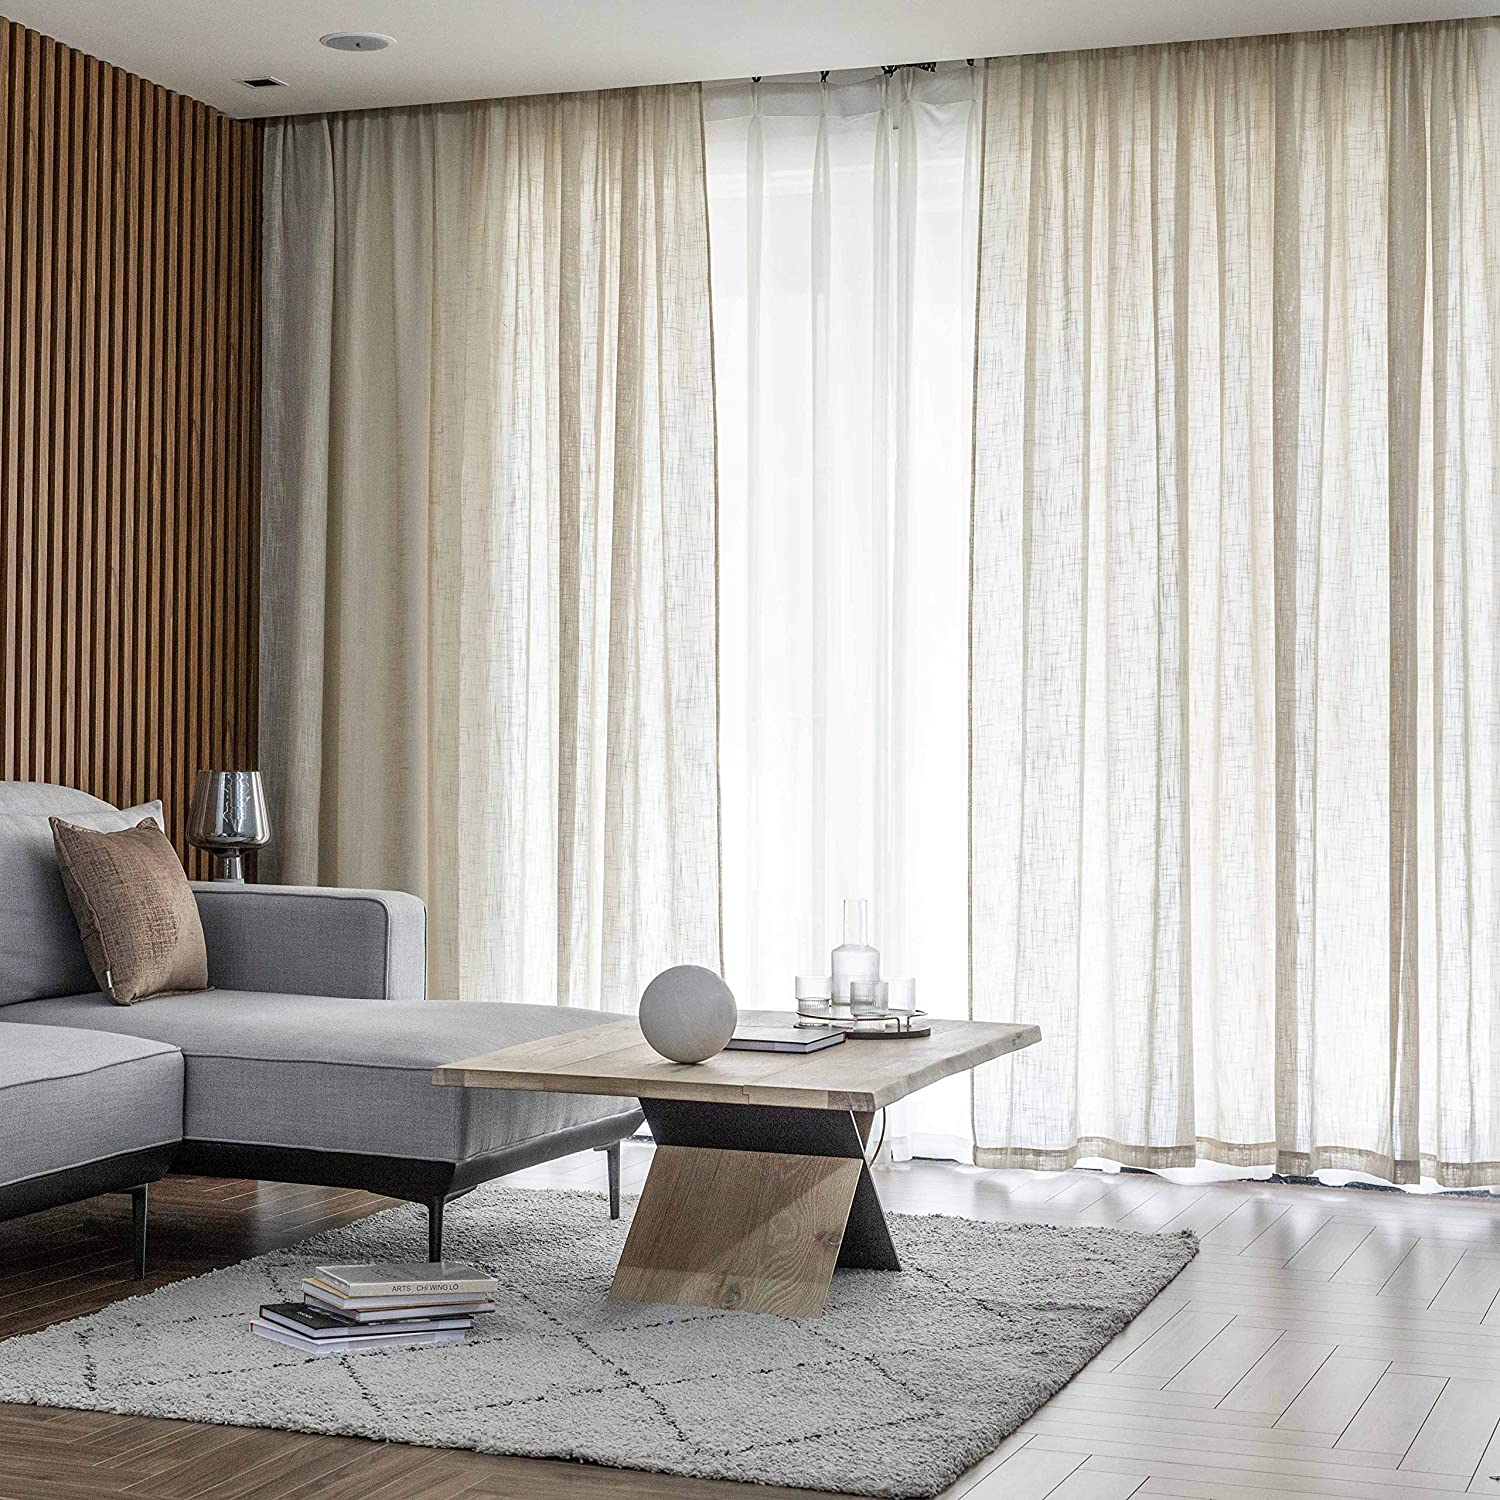 Home Brilliant Semi Sheer Curtains Panel Voile Window Curtains for Living Room Nursery, Set of 2, 54 x 63 inch, Linen